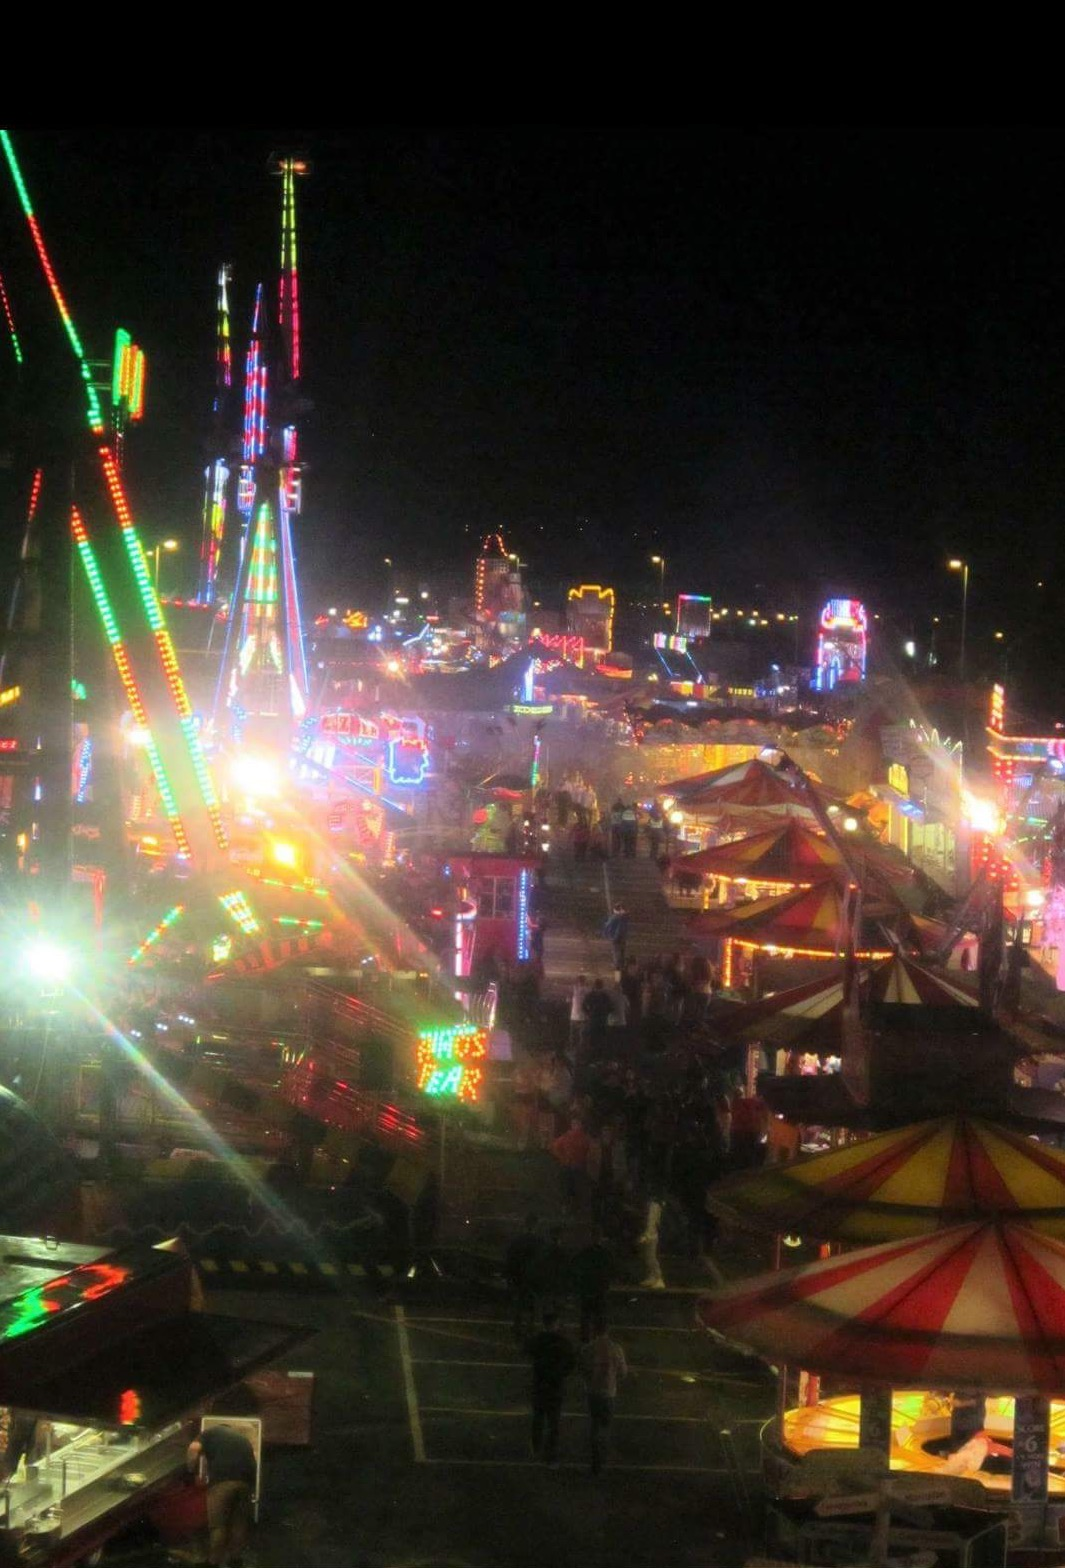 Neath Fair